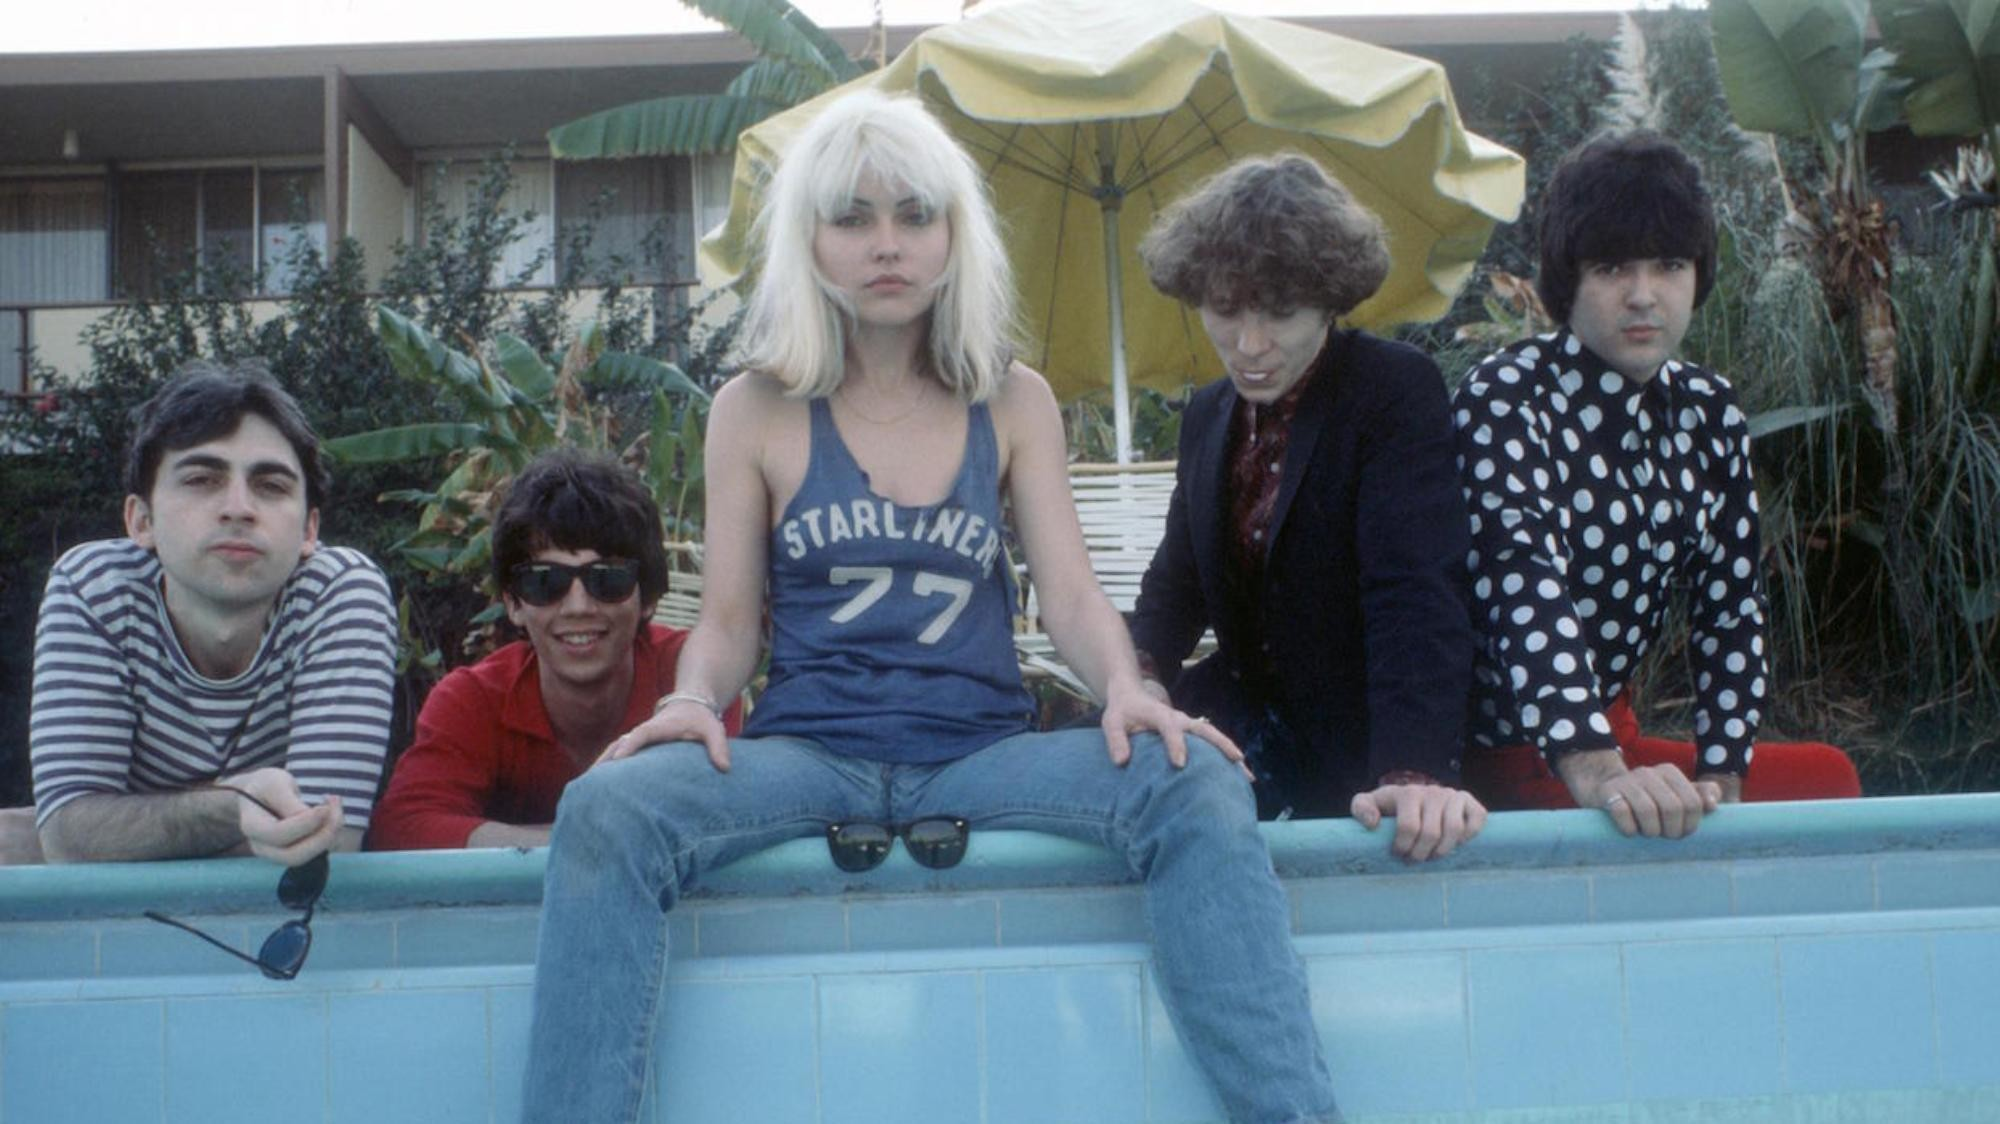 blondie's new album will feature songs by sia, charli xcx, and possibly kanye west